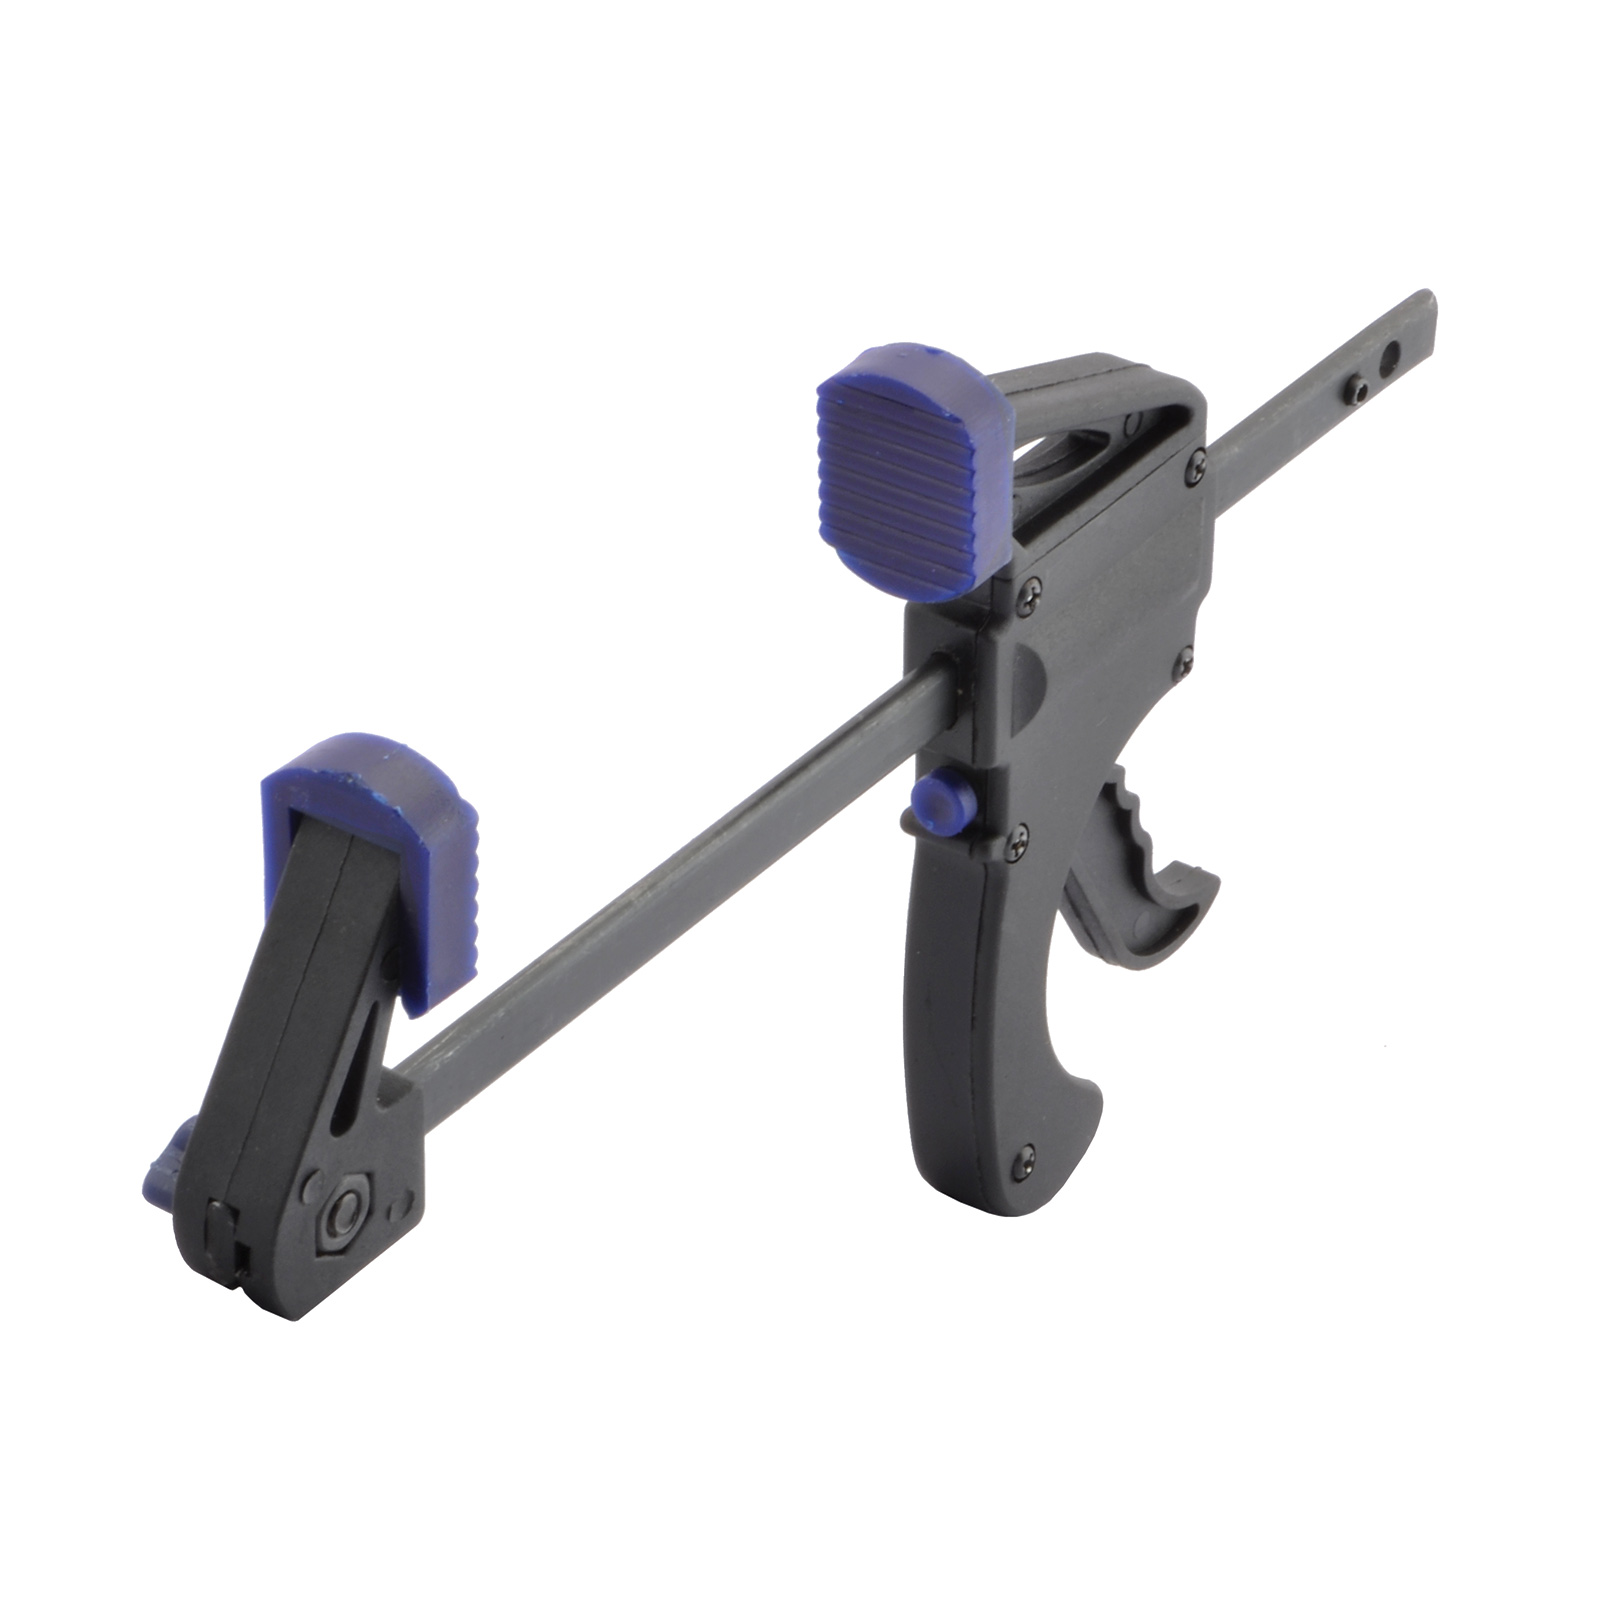 Trigger Action Reversible Bar Clamp